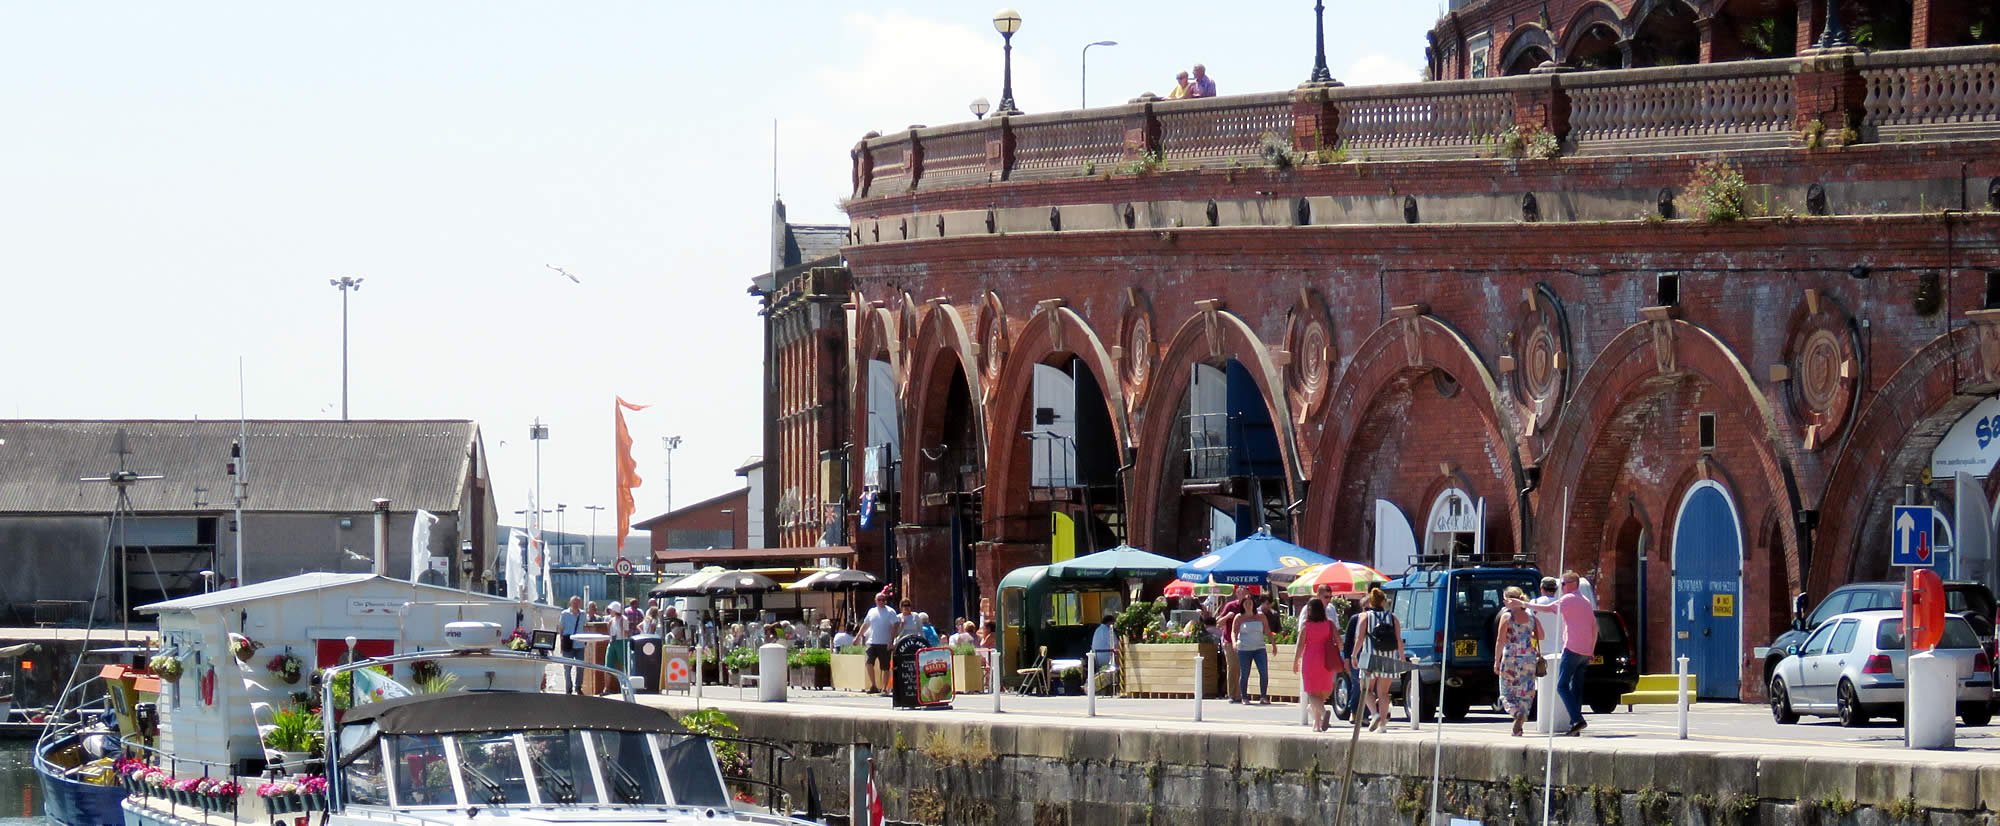 The Arches - Visit Ramsgate